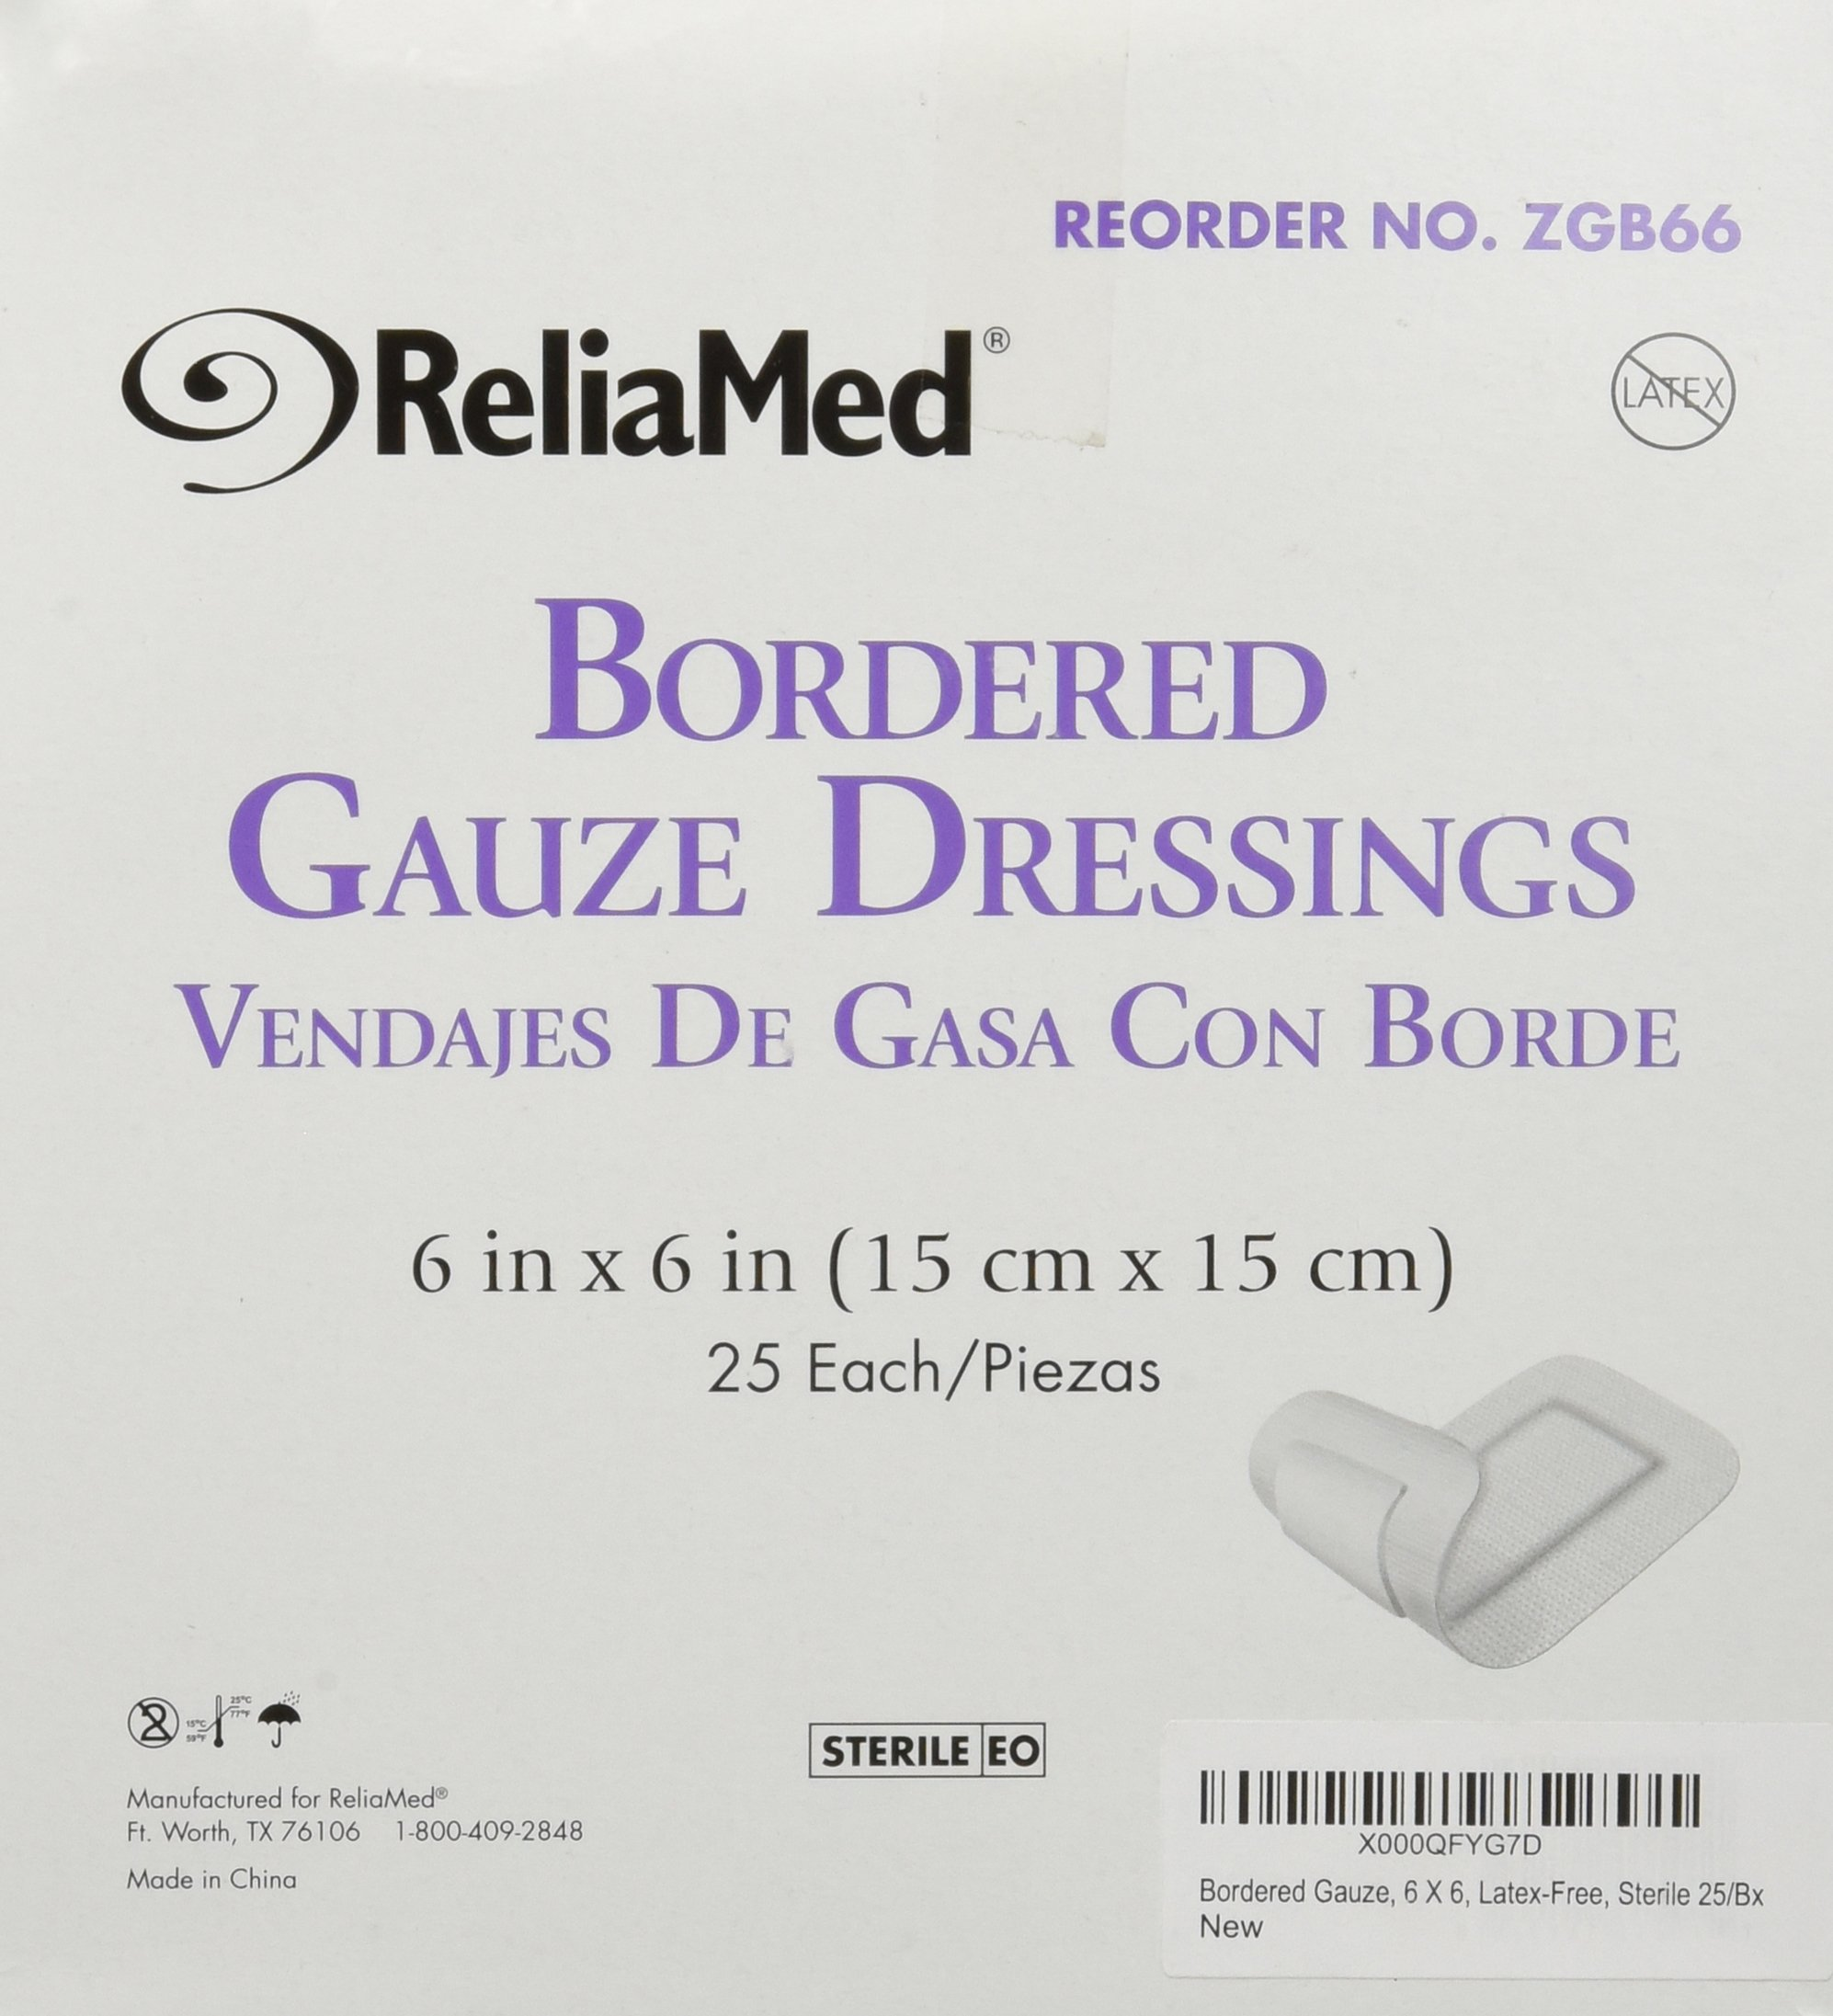 Bordered Gauze, 6 X 6, Latex-Free, Sterile 25/Bx by Reliamed